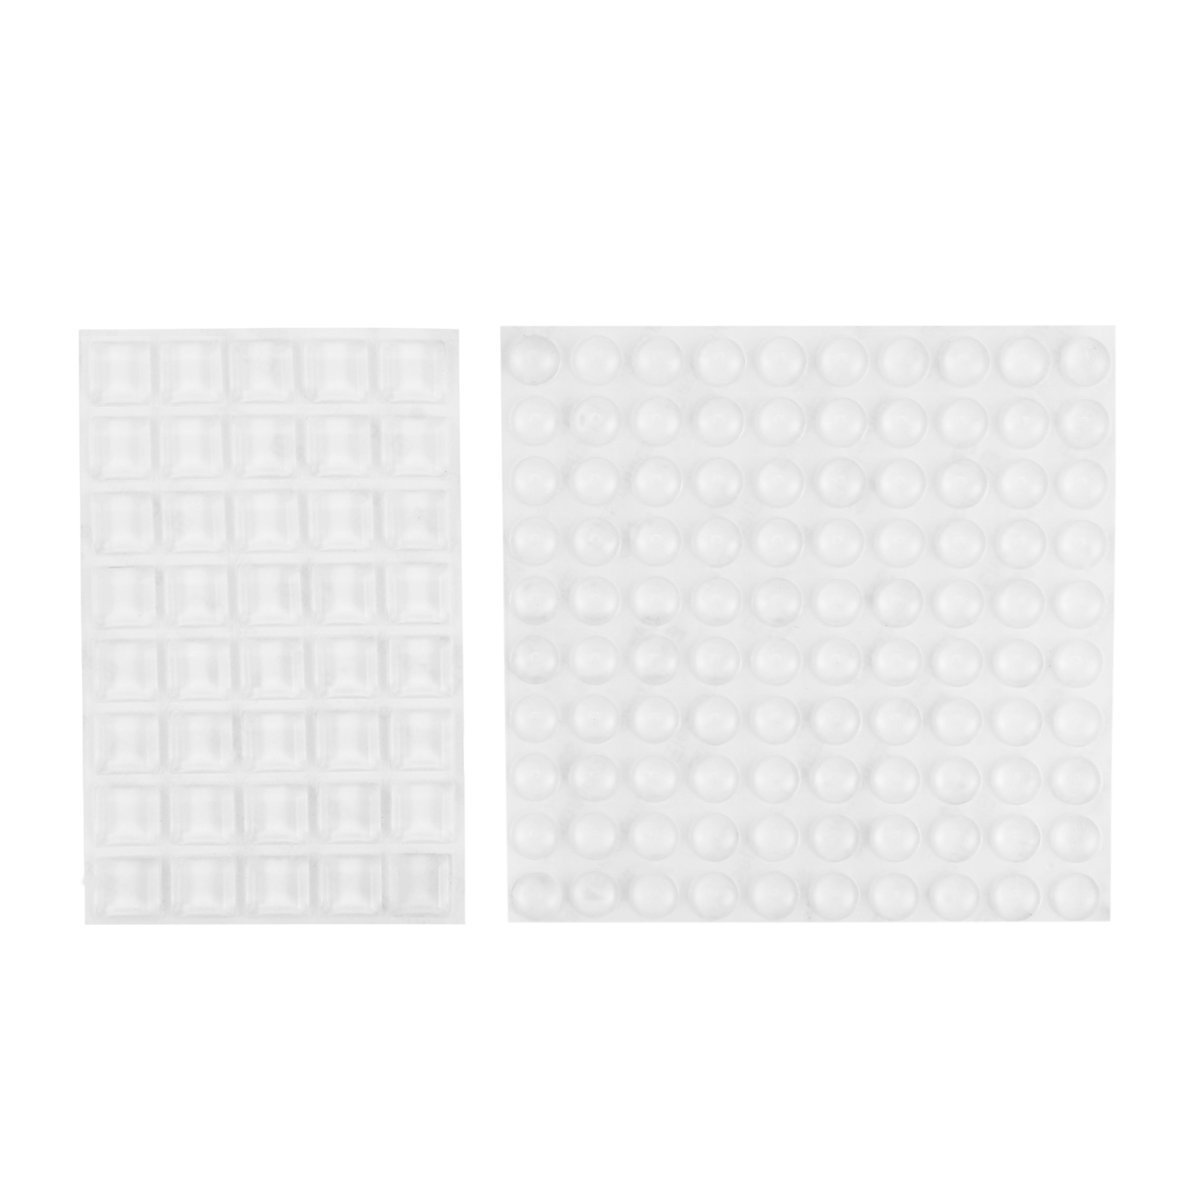 Furniture Bumpers,Lenink Feet Bumpers,140pcs Clear Adhesive Bumper Pads for Cabinet Drawer Door Walls Protection